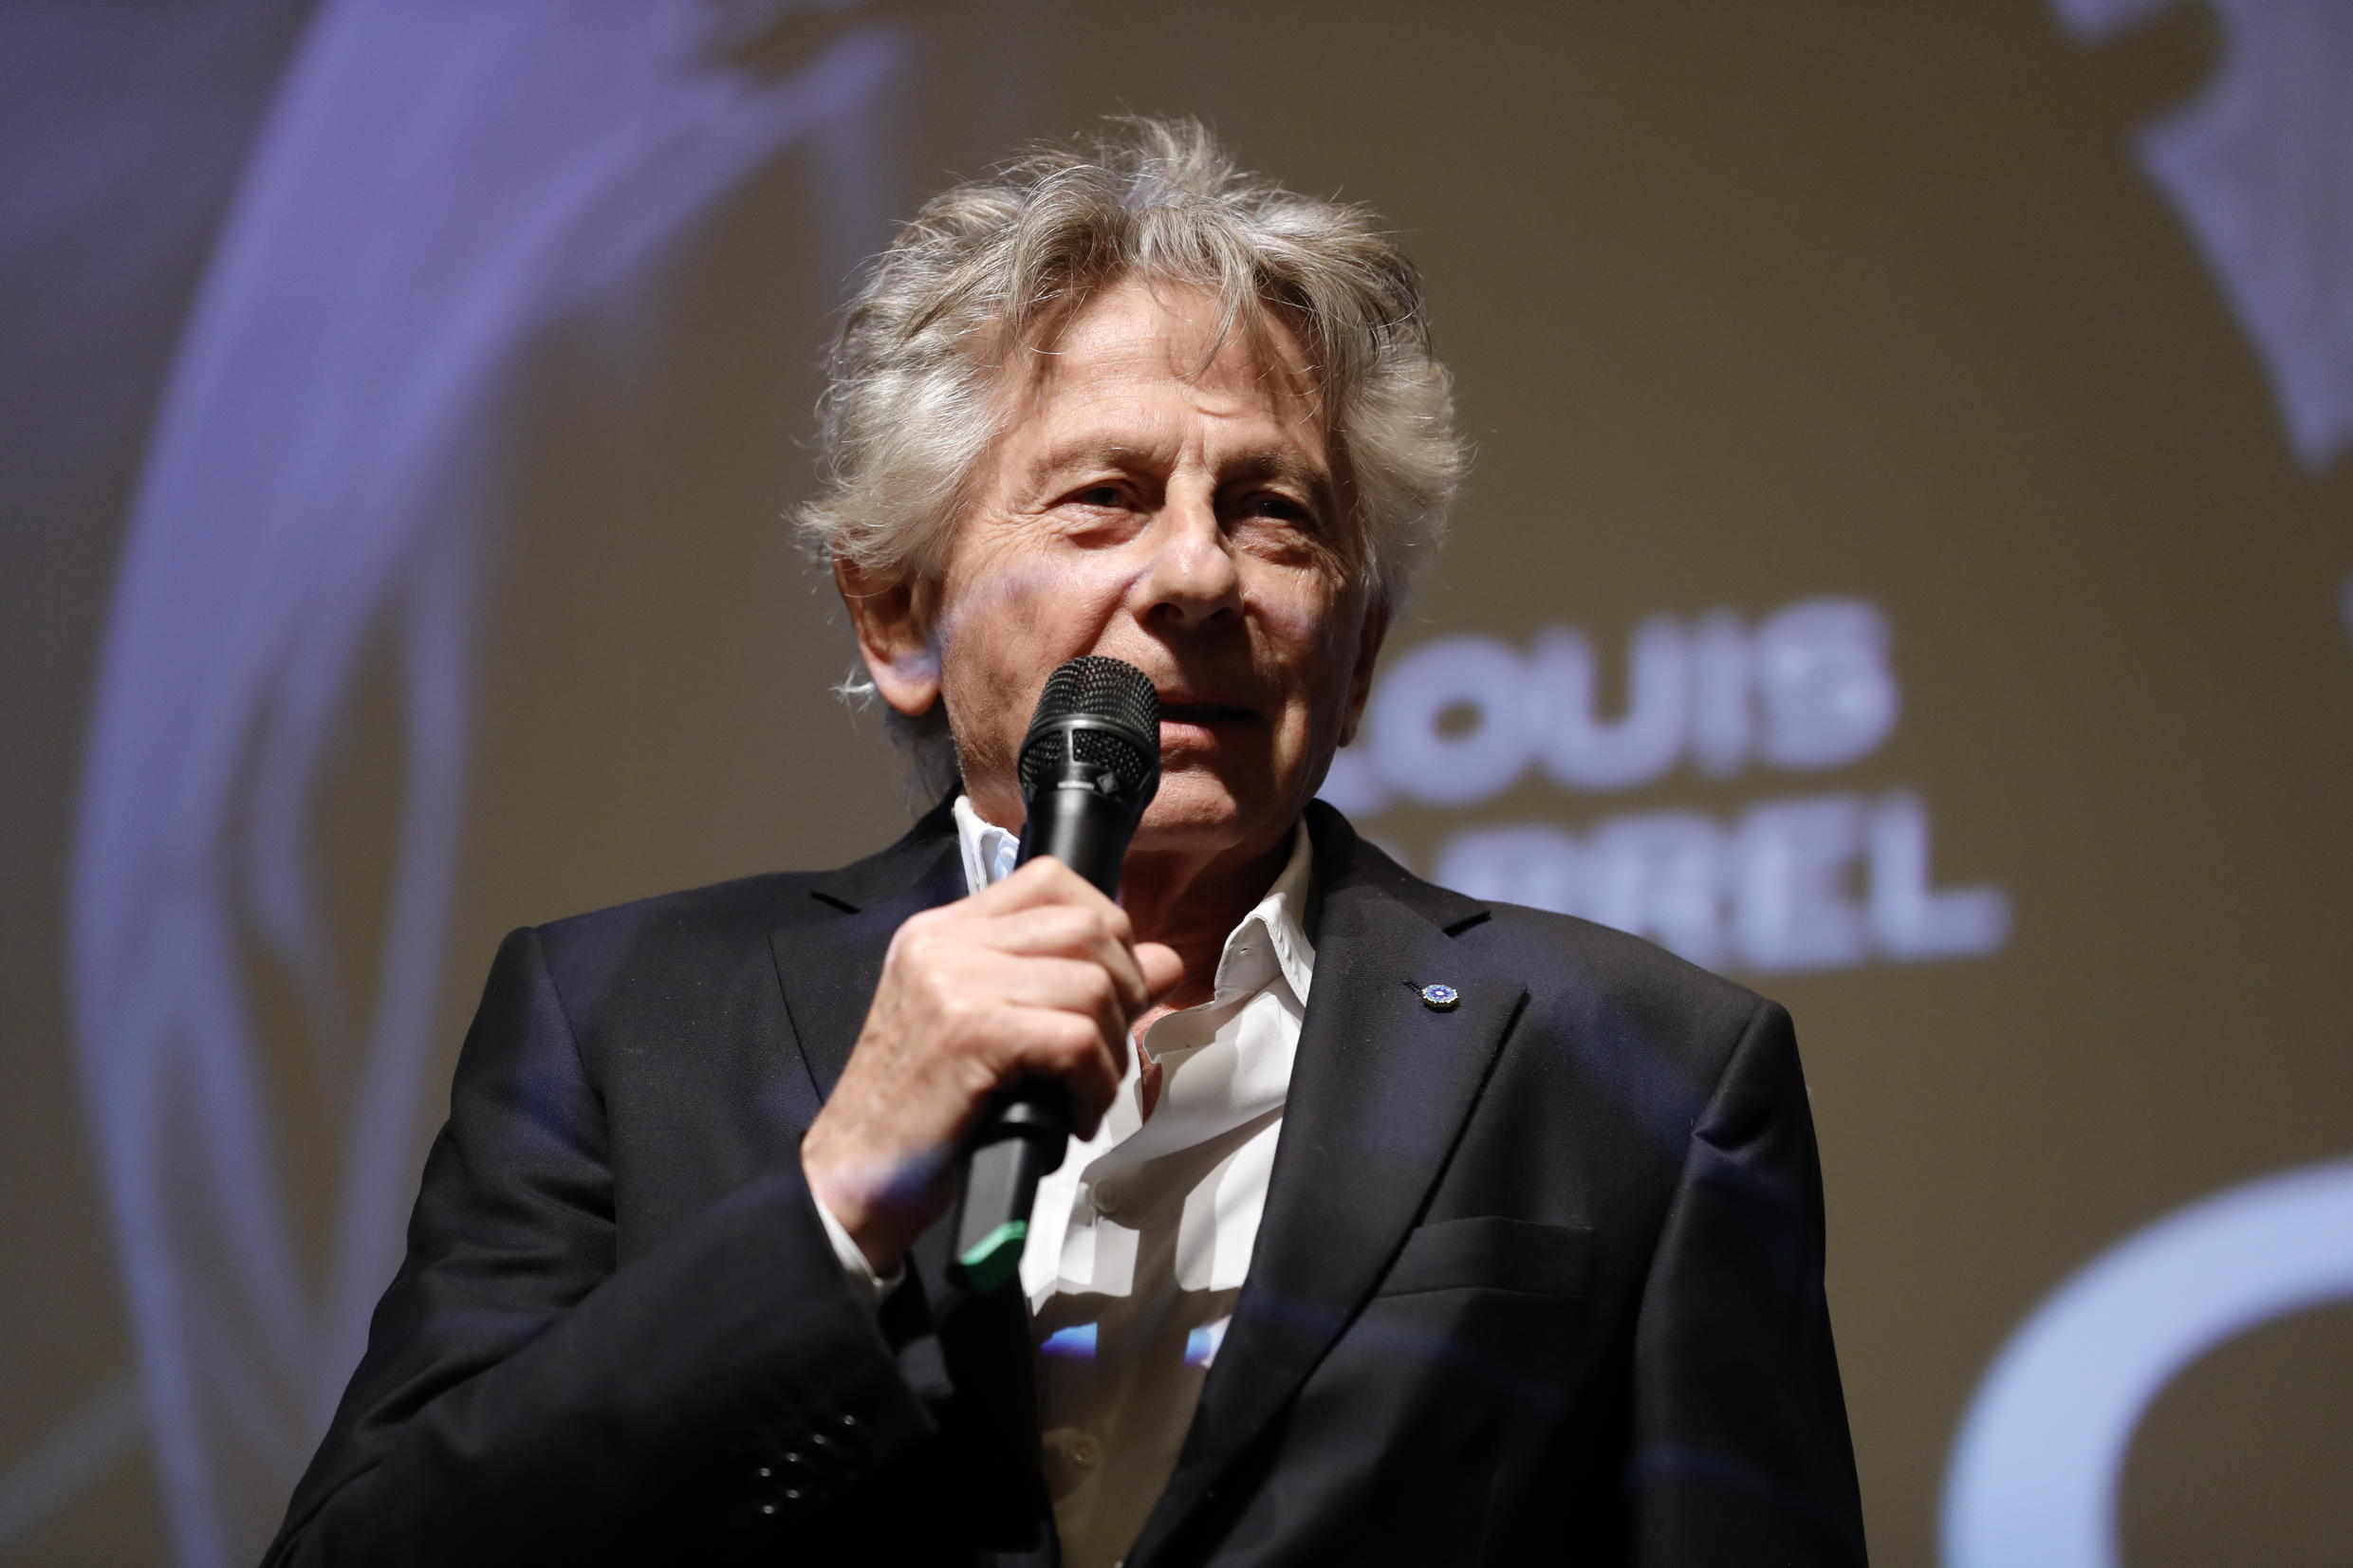 French Polish director Roman Polanski is persona non grata in Hollywood, and cannot return to the US for fear of arrest